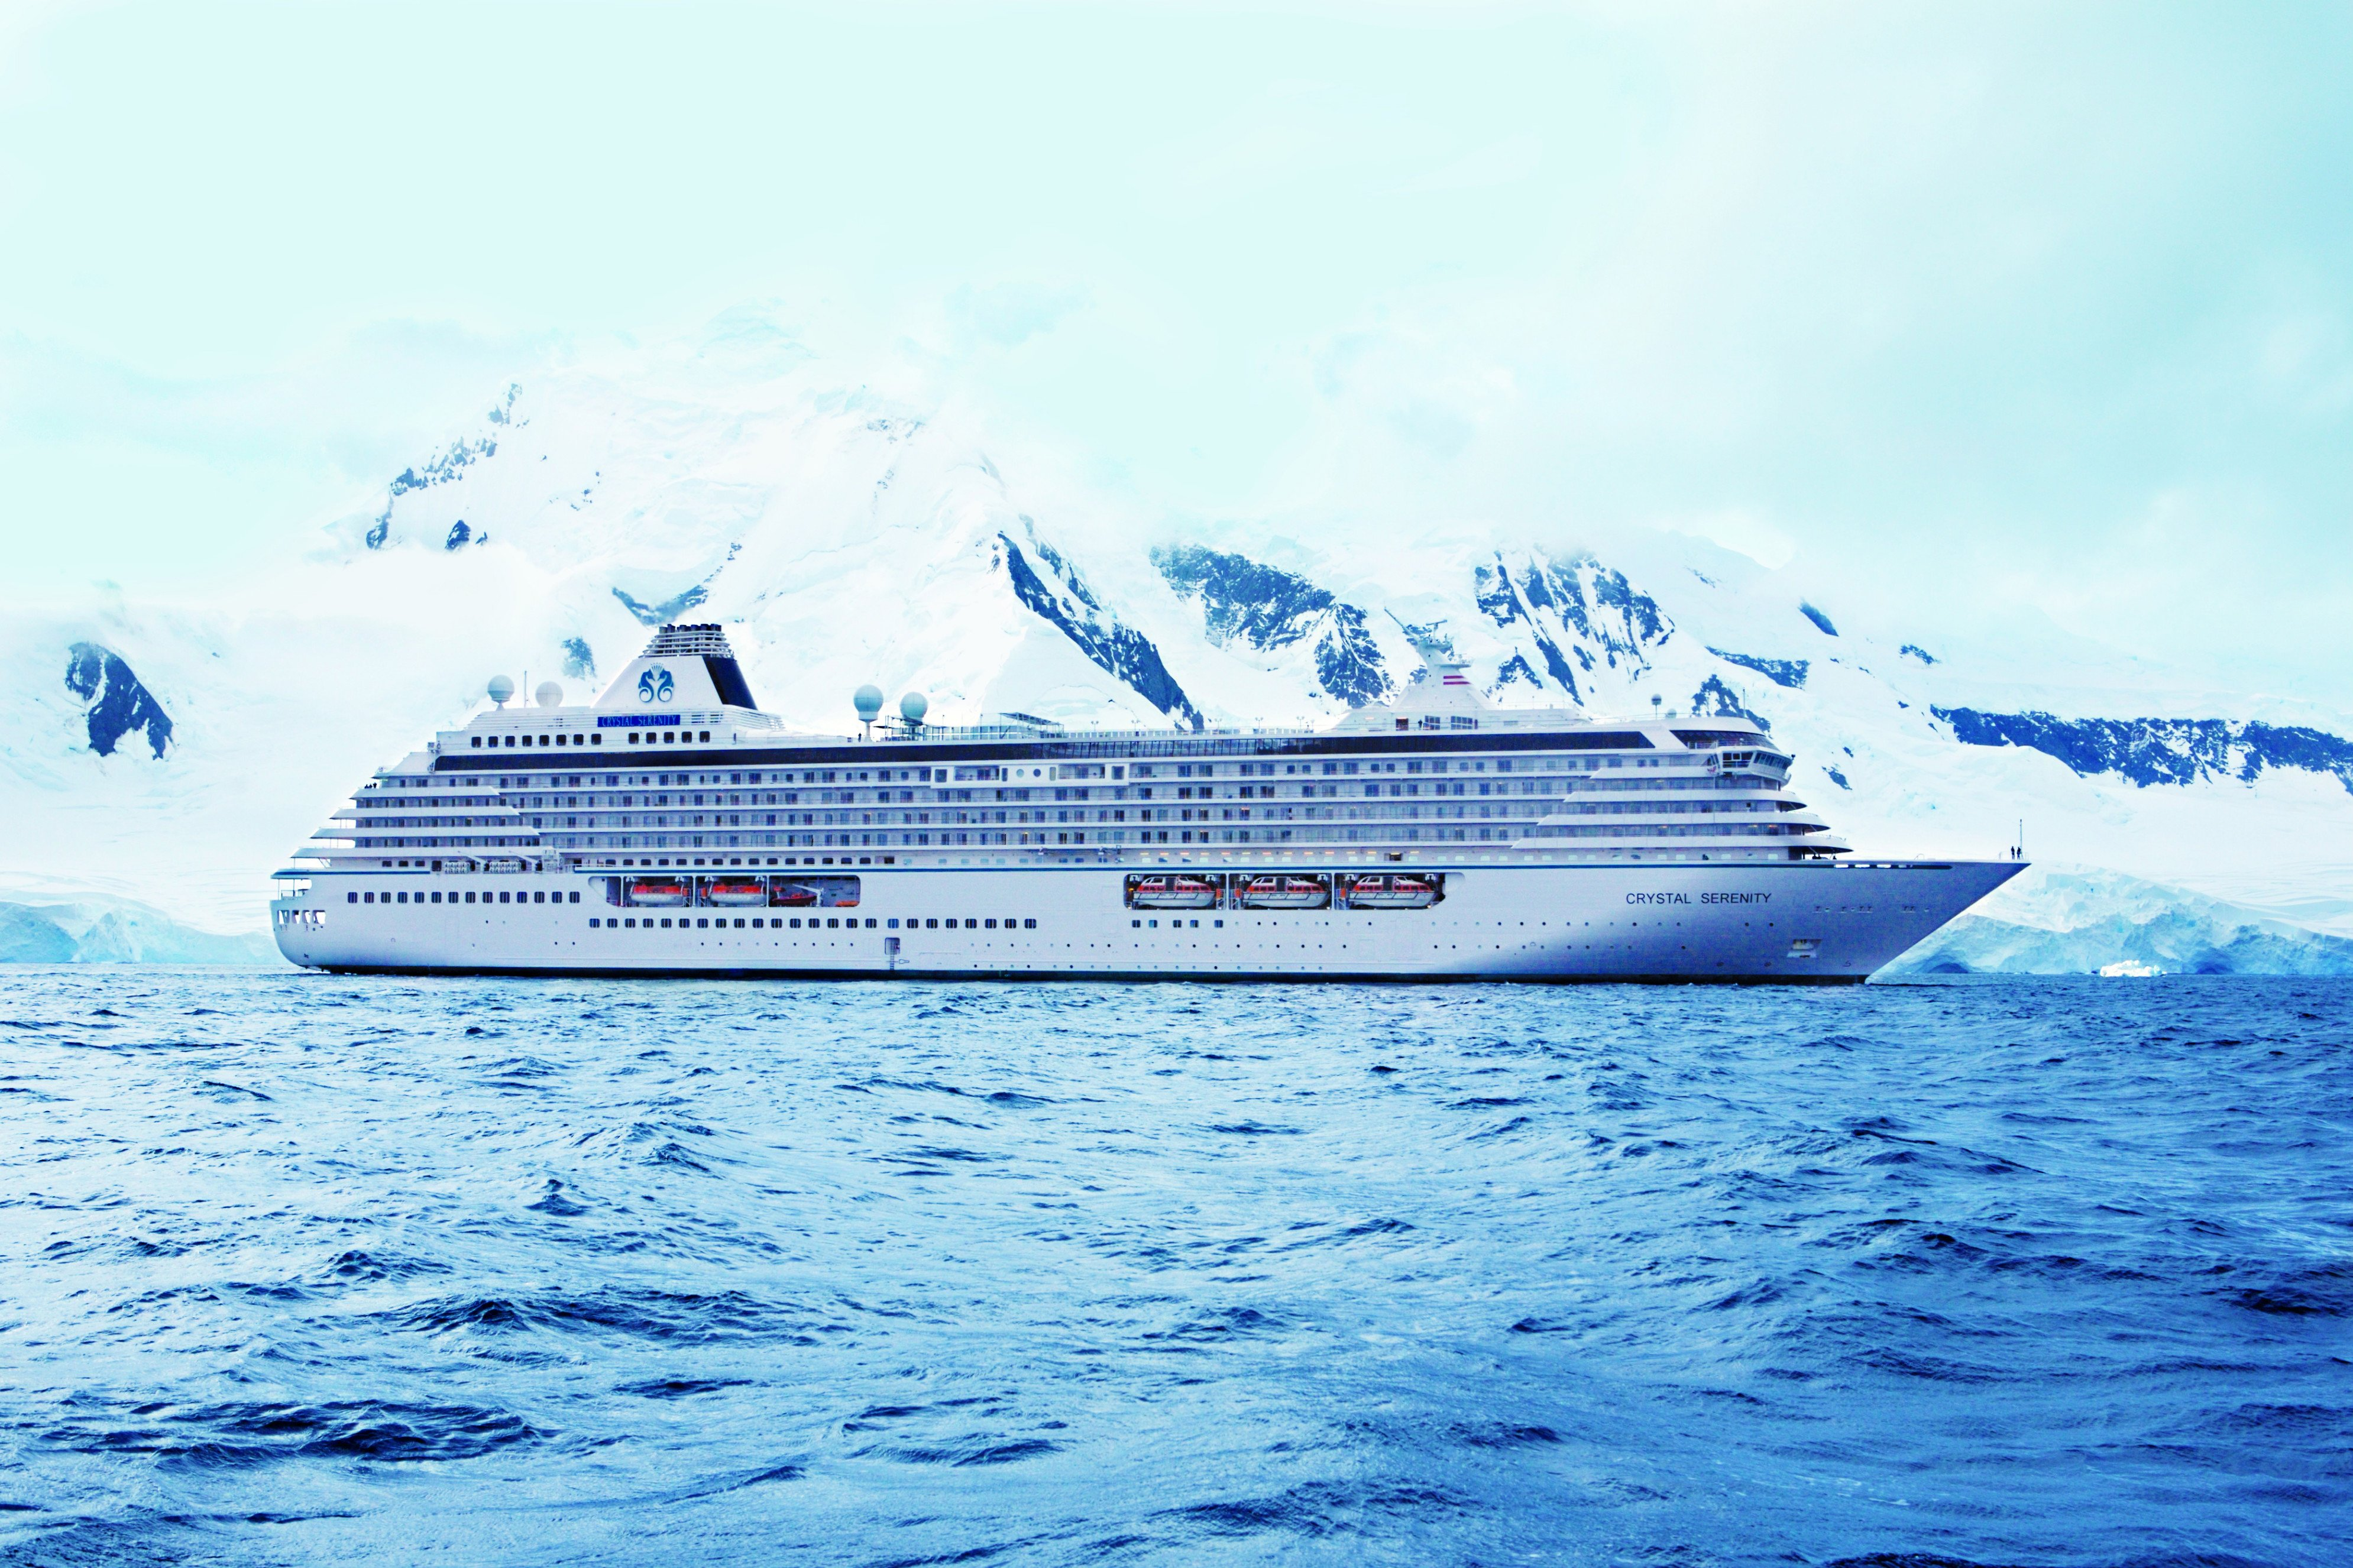 In an undated handout photo, the cruise ship Crystal Serenity sails waters off Antarctica. The ship is slated to sail the Northwest Passage in 2016 carrying nearly 1,700 passengers and crewmembers. (Courtesy Crystal Cruises)